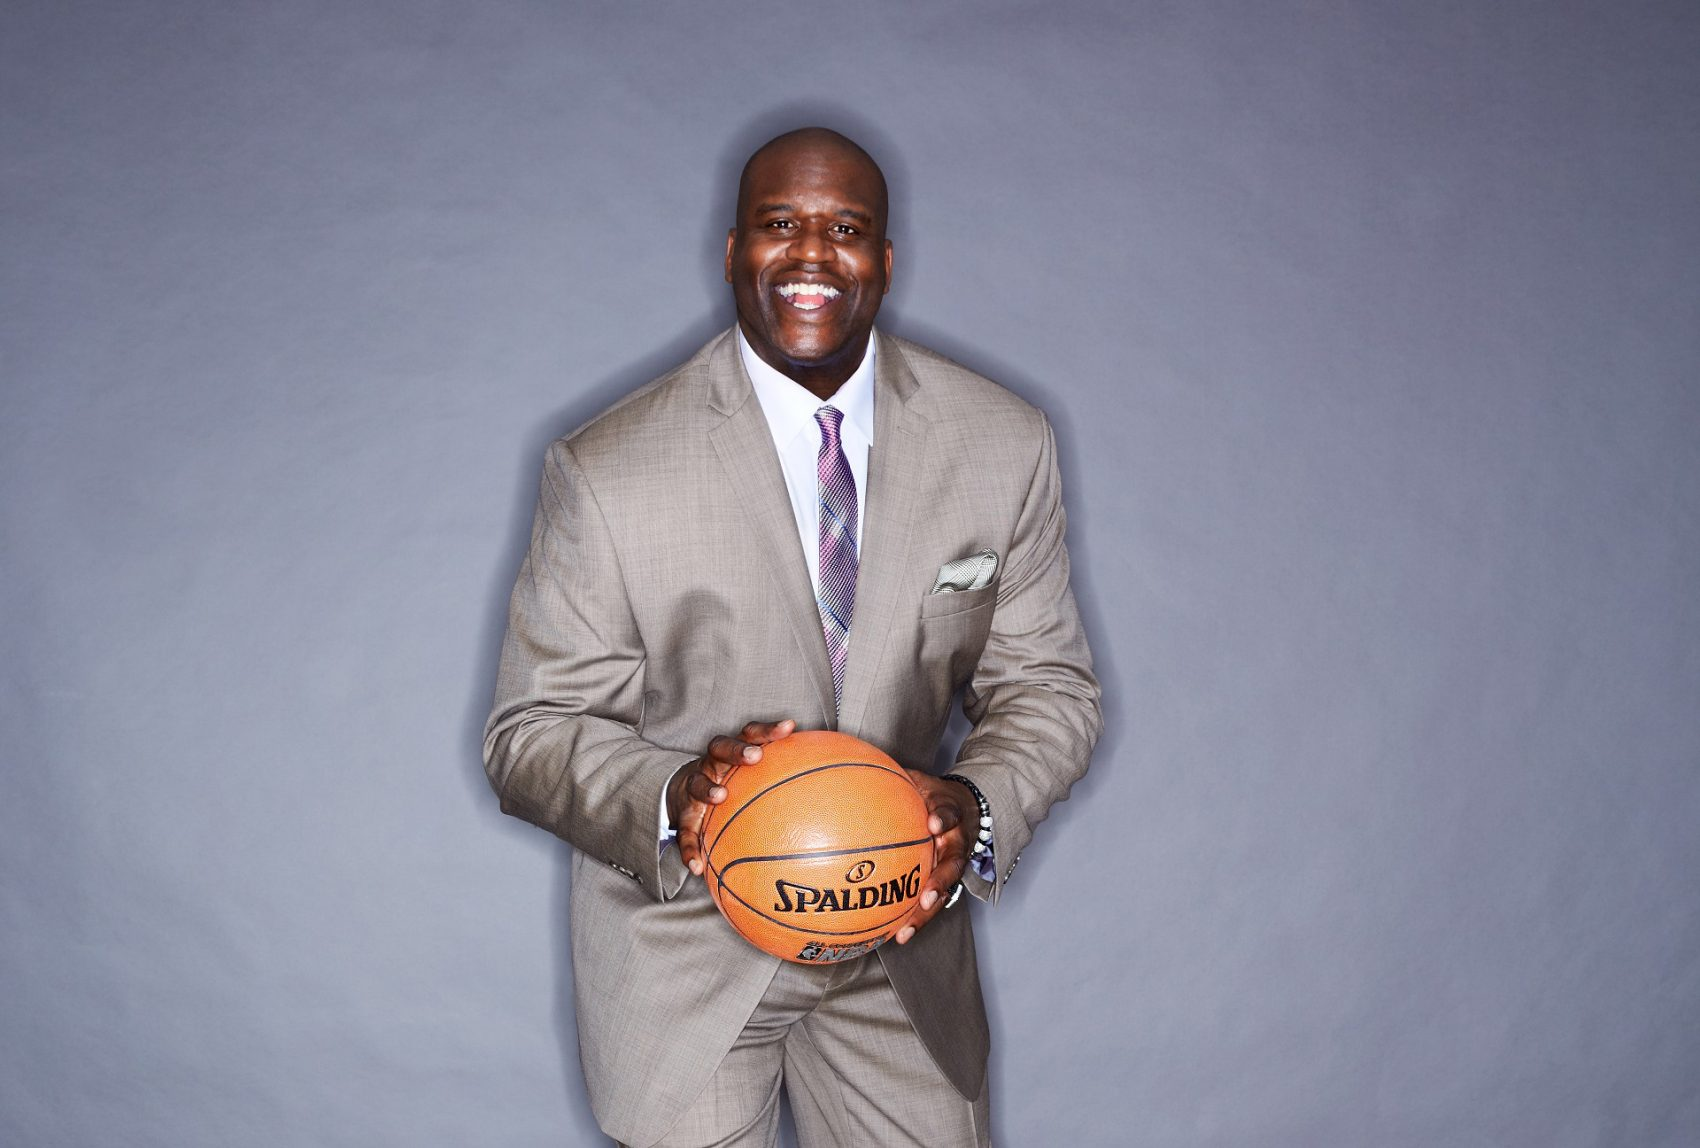 Shaquille-ONeal-author-photo-edit.jpg